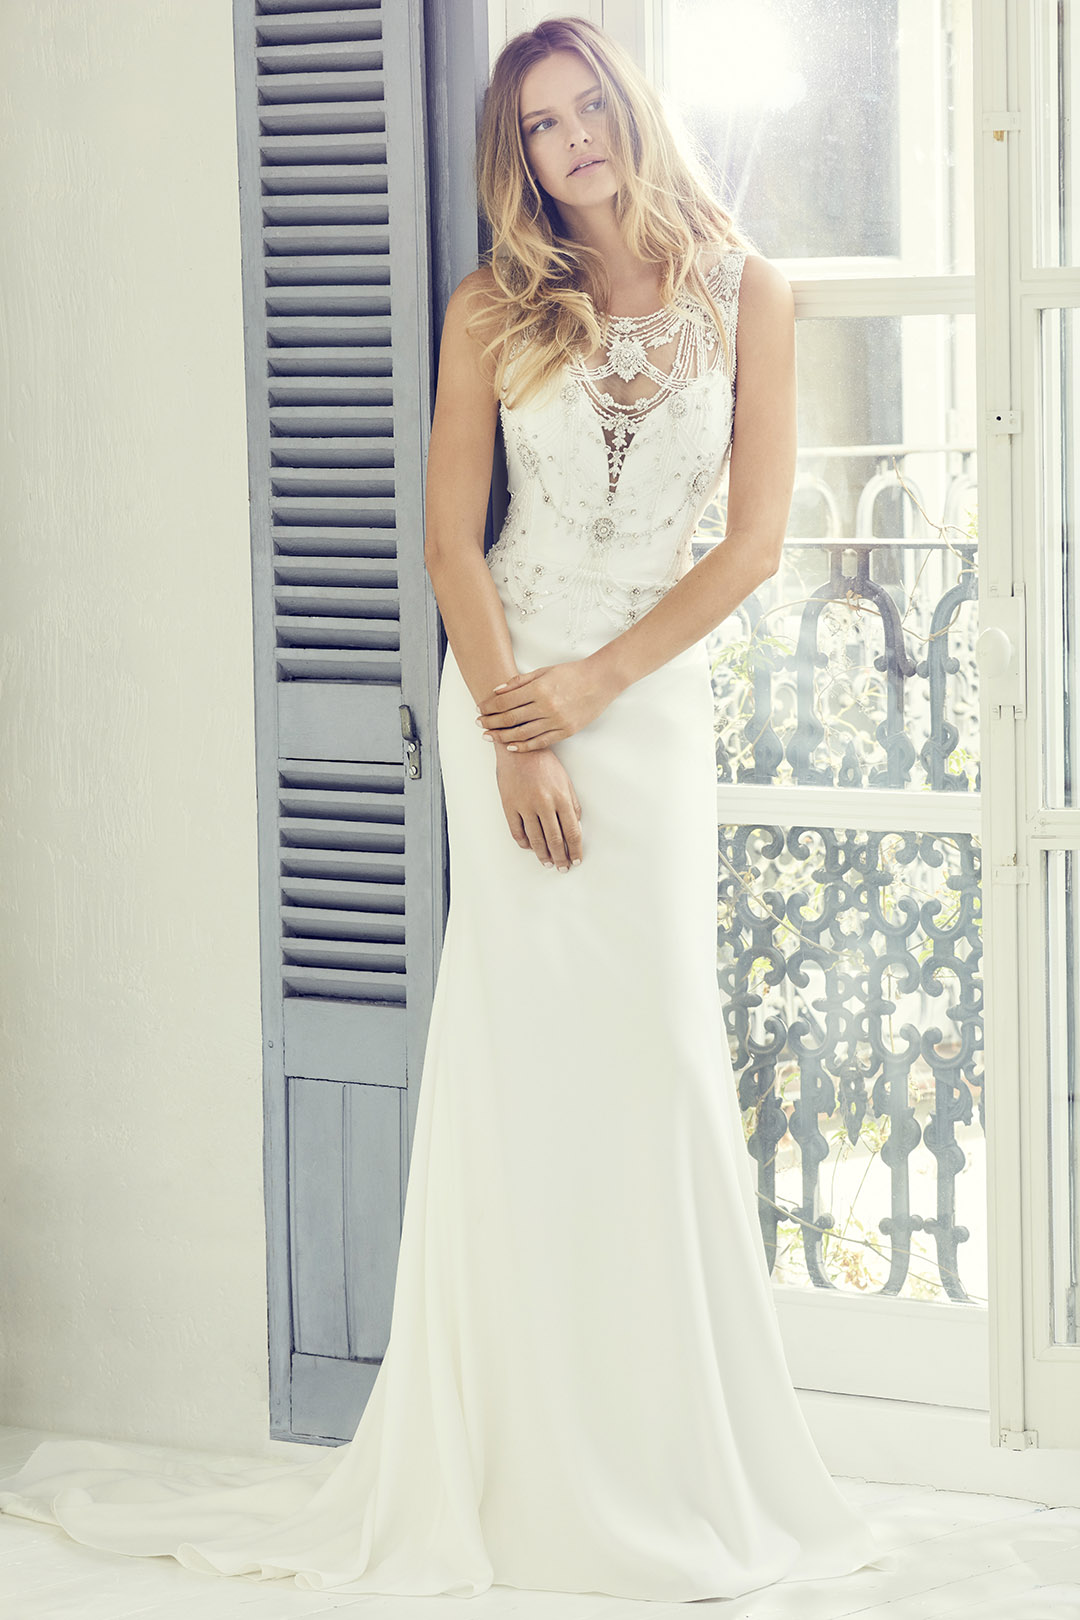 gianna1-wedding-dresses-uk-suzanne-neville-collection-hd-2019